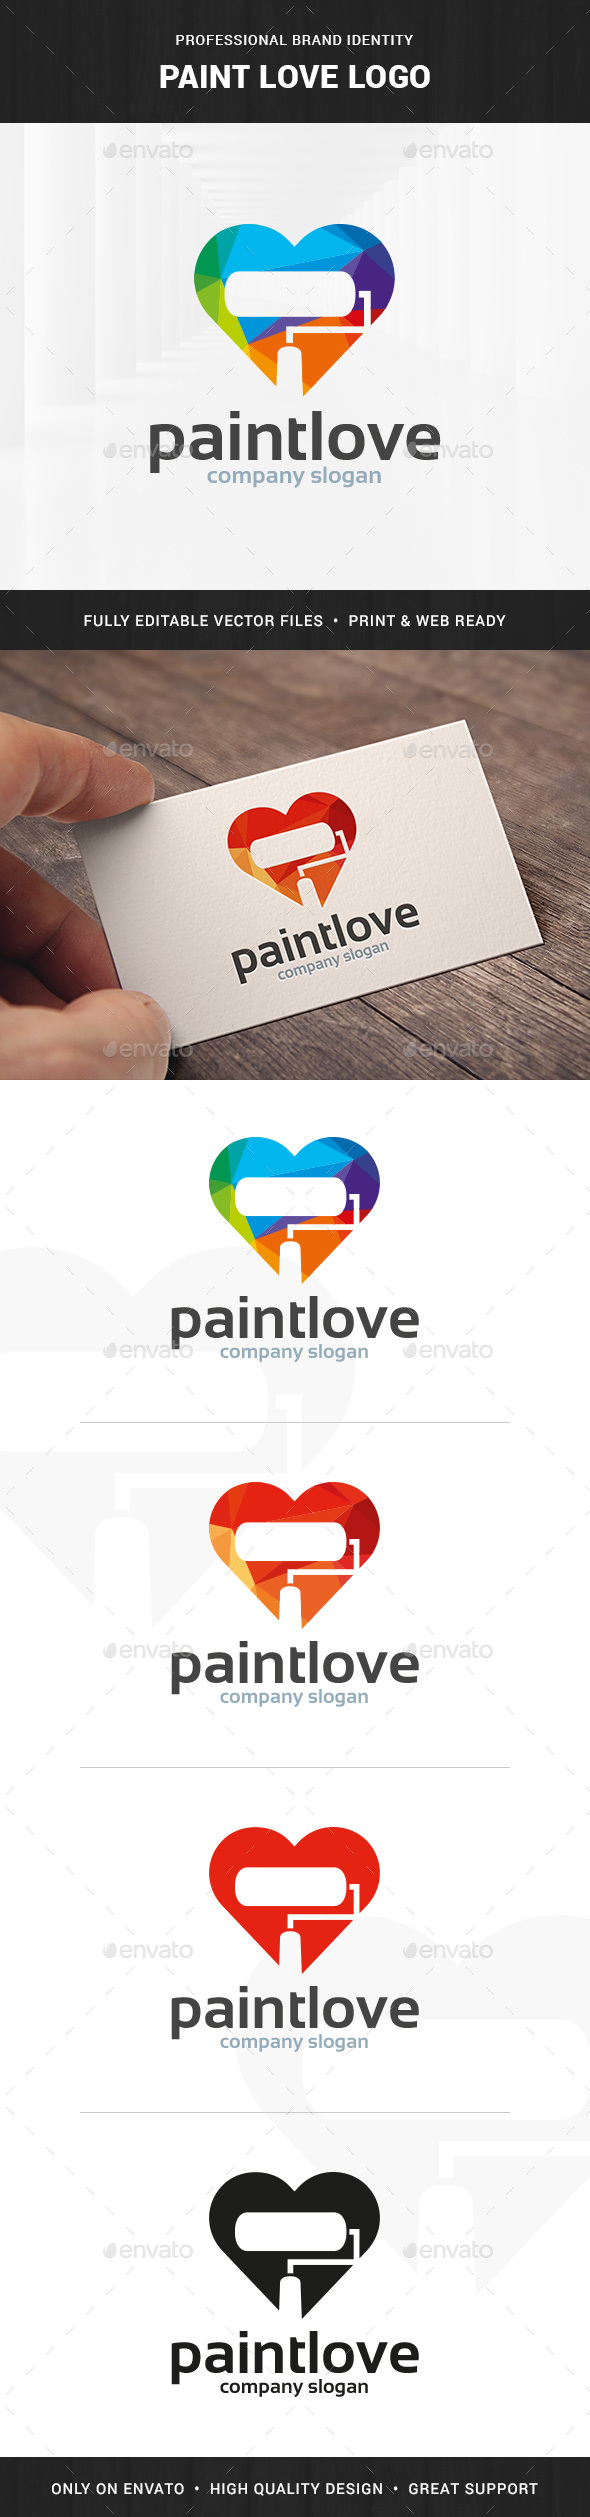 Paint Love Logo Template - Objects Logo Templates